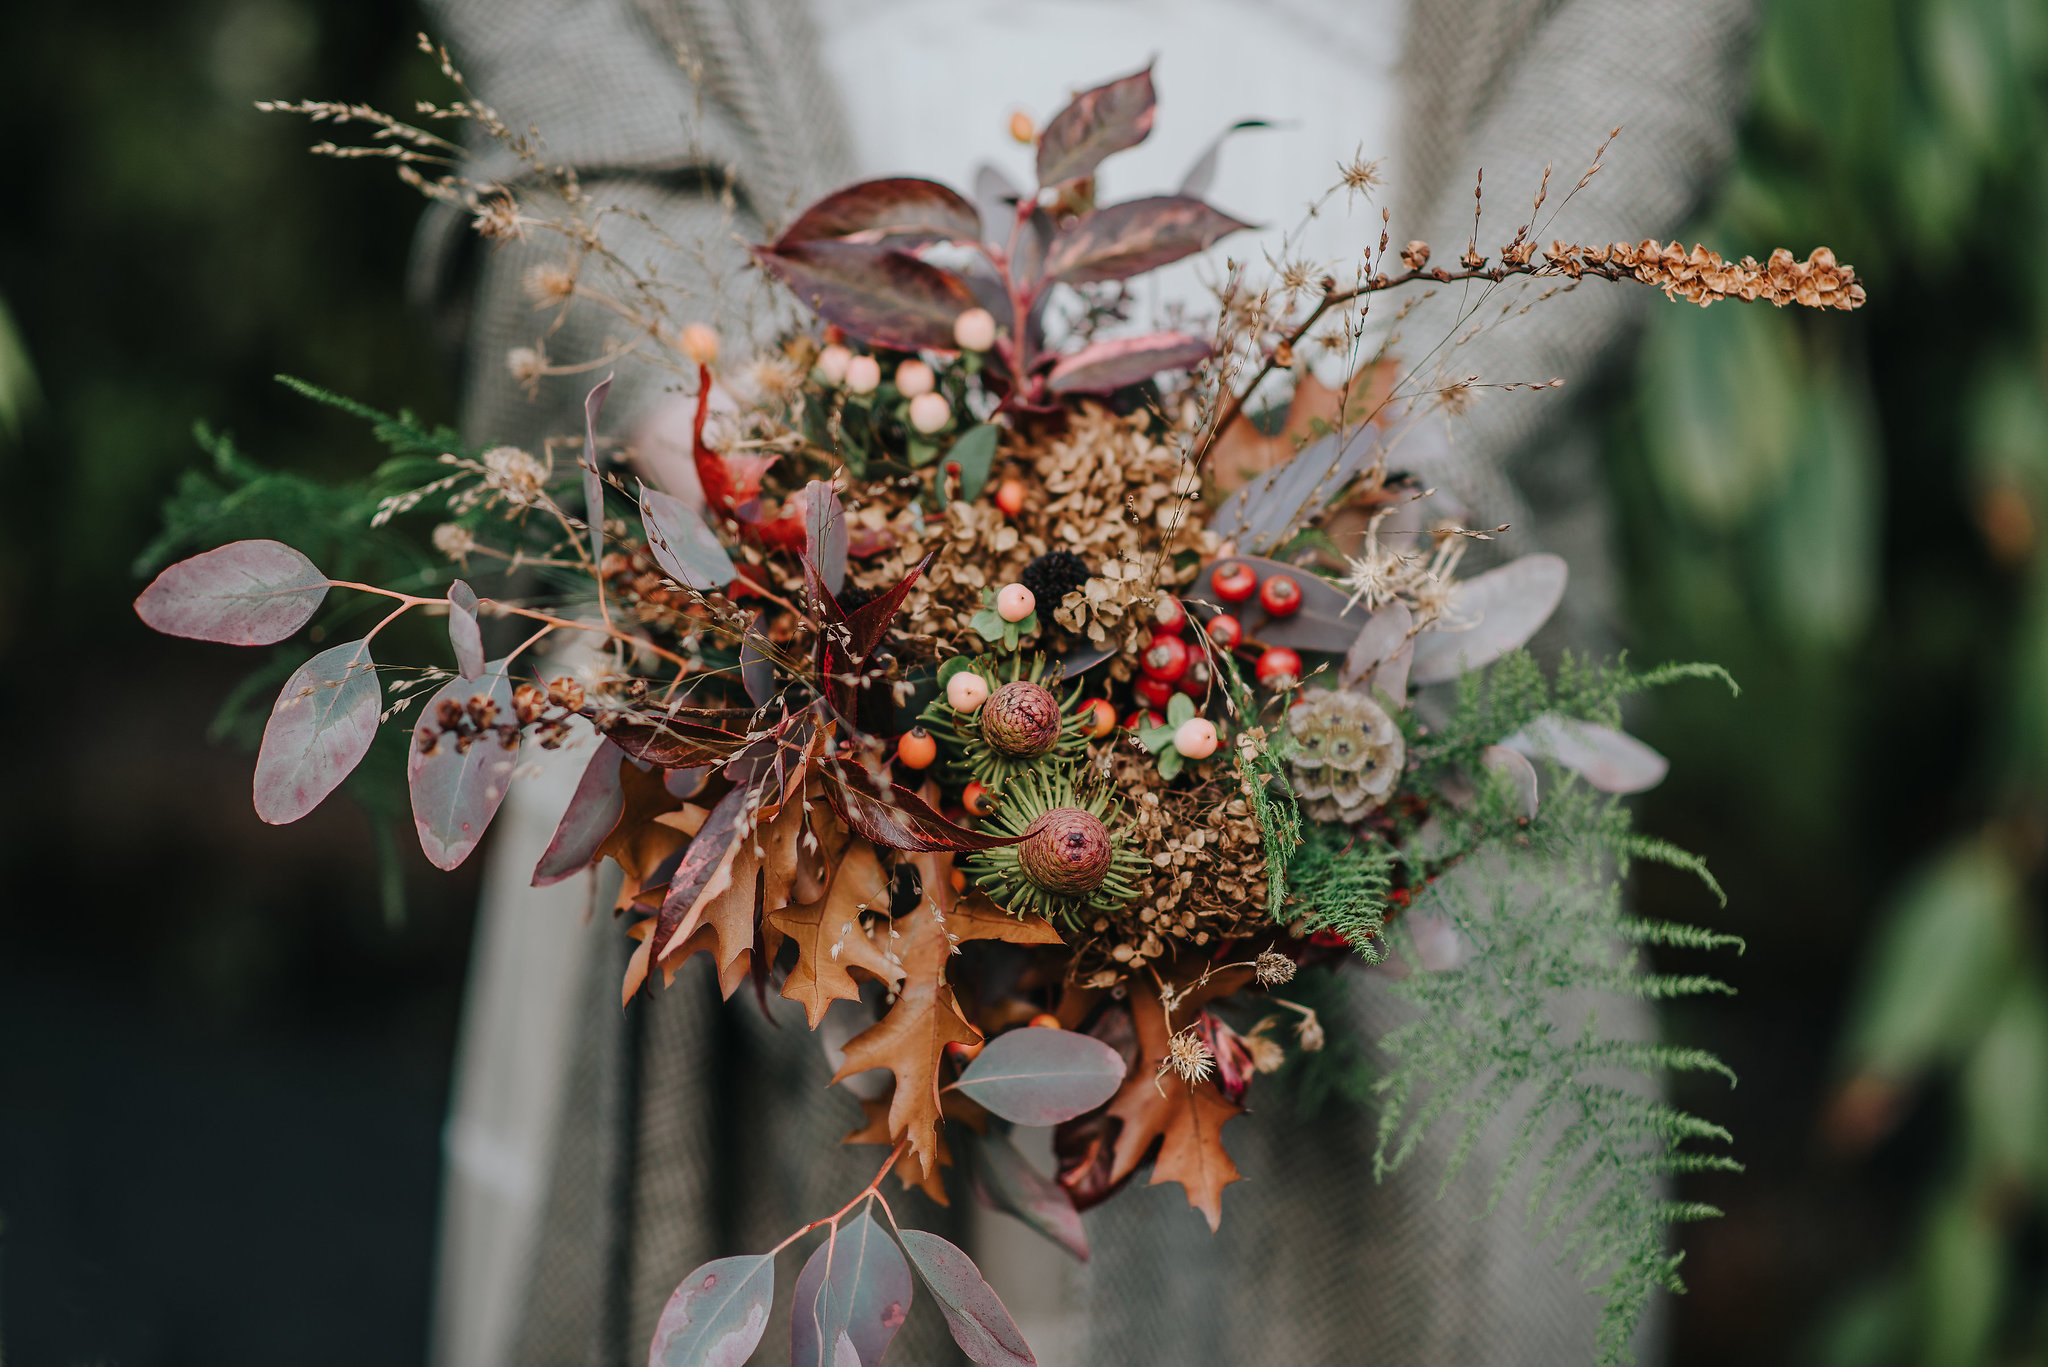 Close up of bridal bouquet with autumn flowers and leaves